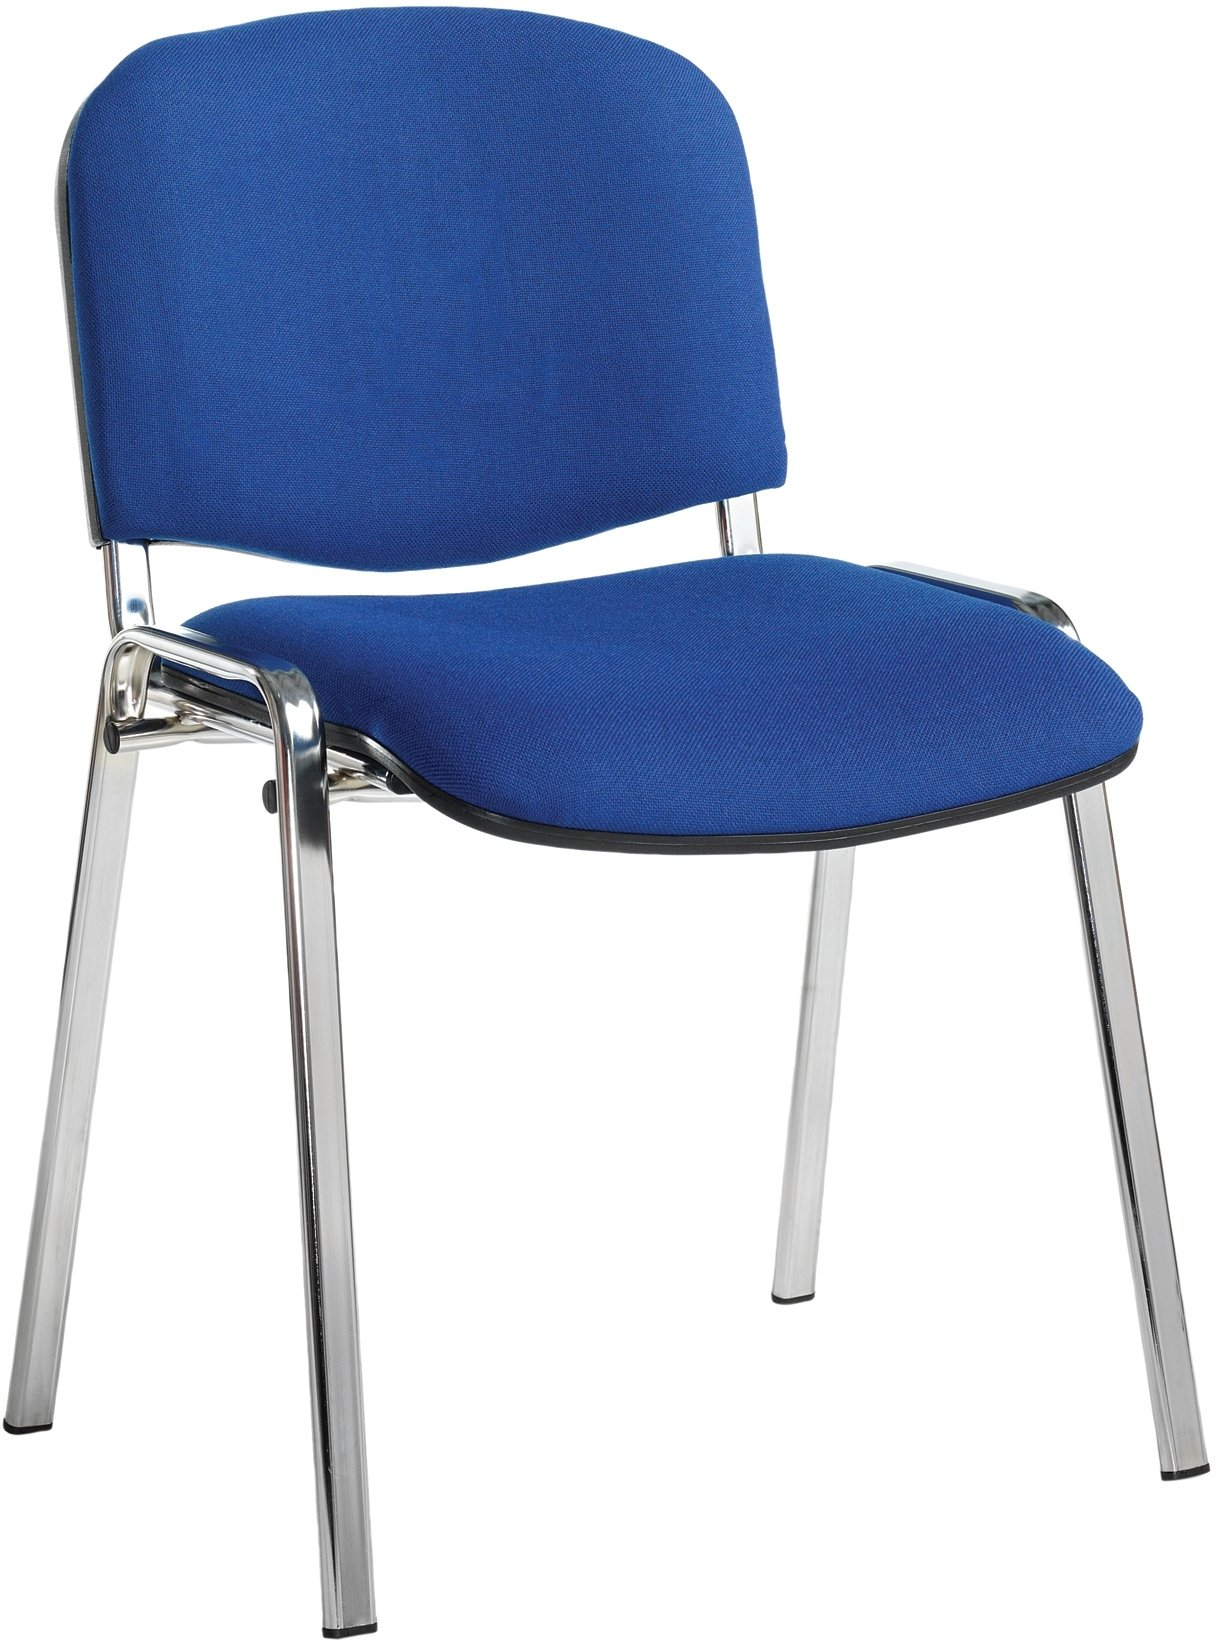 stackable chairs with arms kmart baby high taurus chrome frame stacking chair no price per